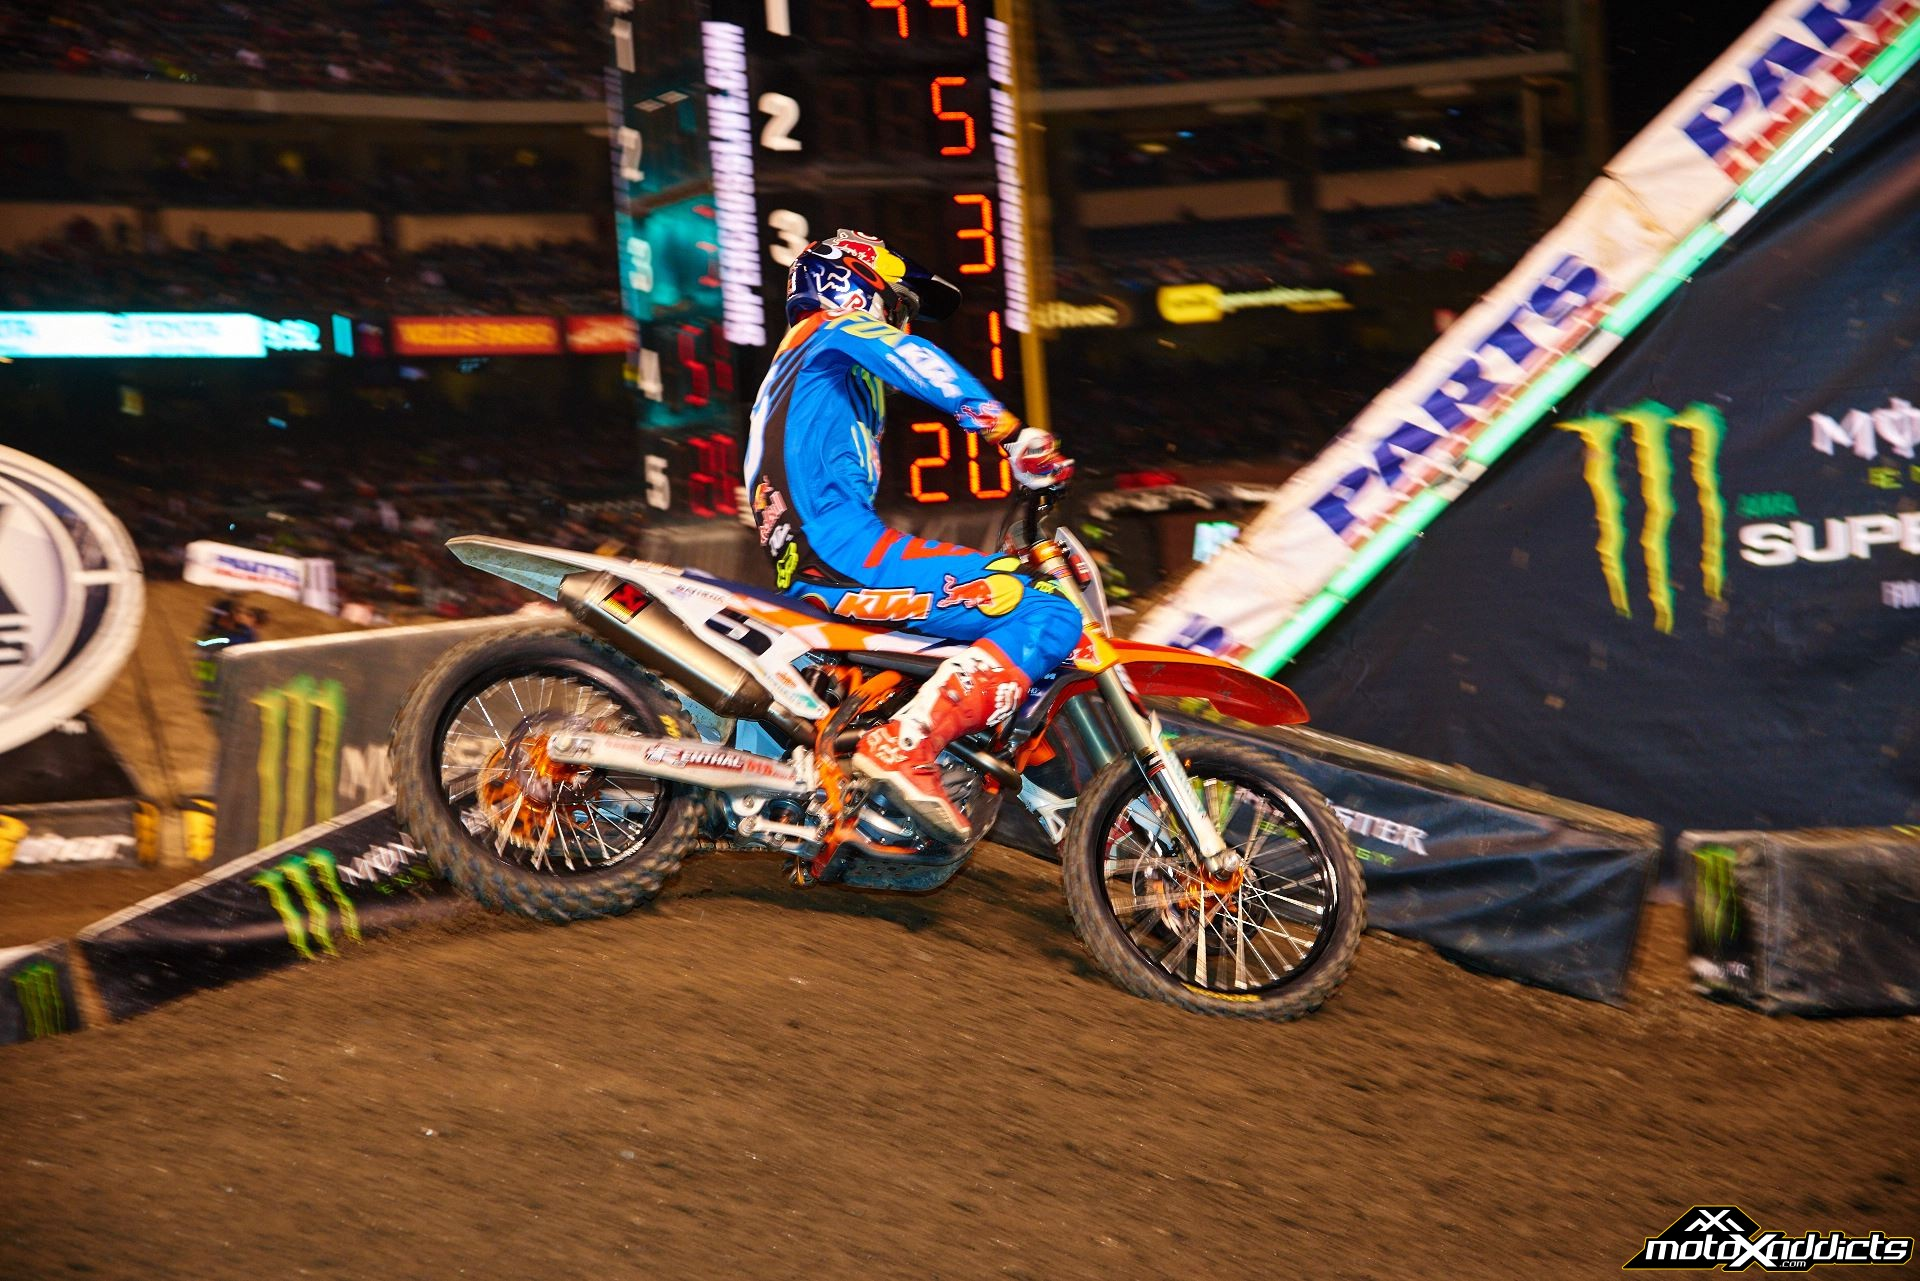 Ryan Dungey's results have progressively improved in '15. Photo by: Hoppenworld